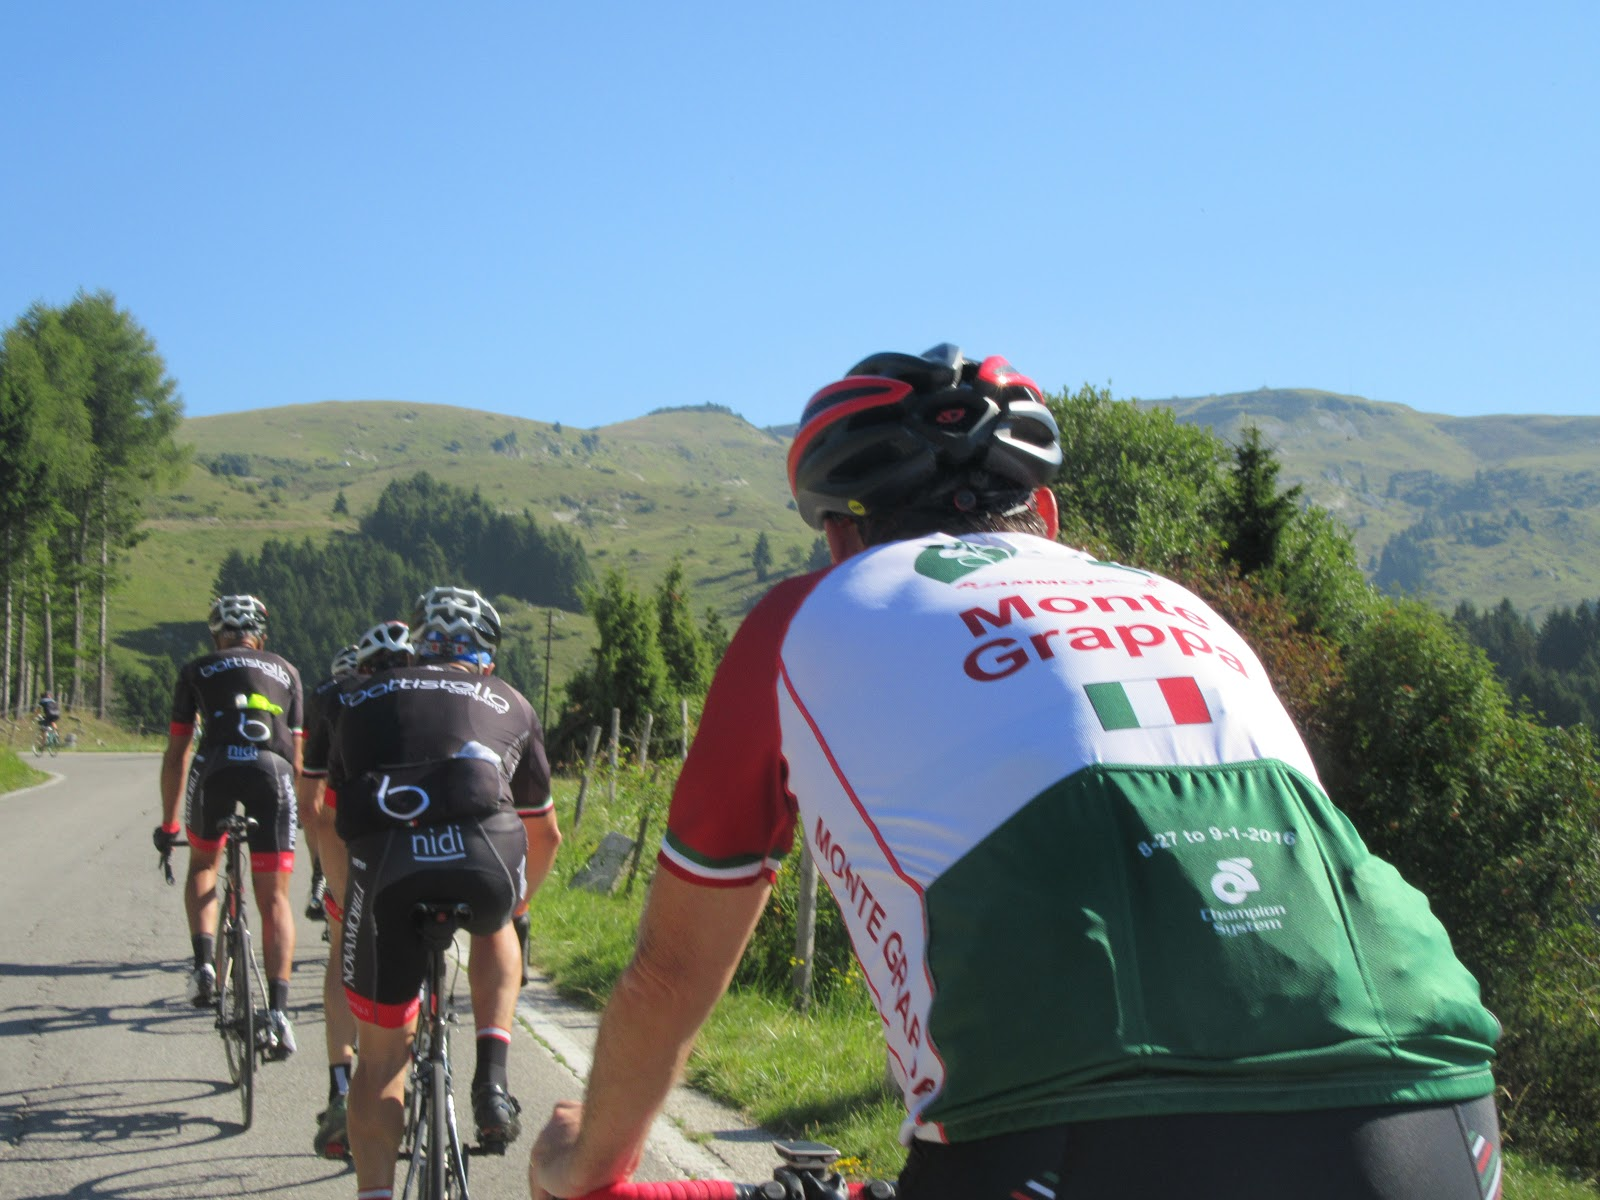 Cycling Monte Grappa from Romano d'Ezzilino - many cyclists on the road riding bikes, pjamm cycling